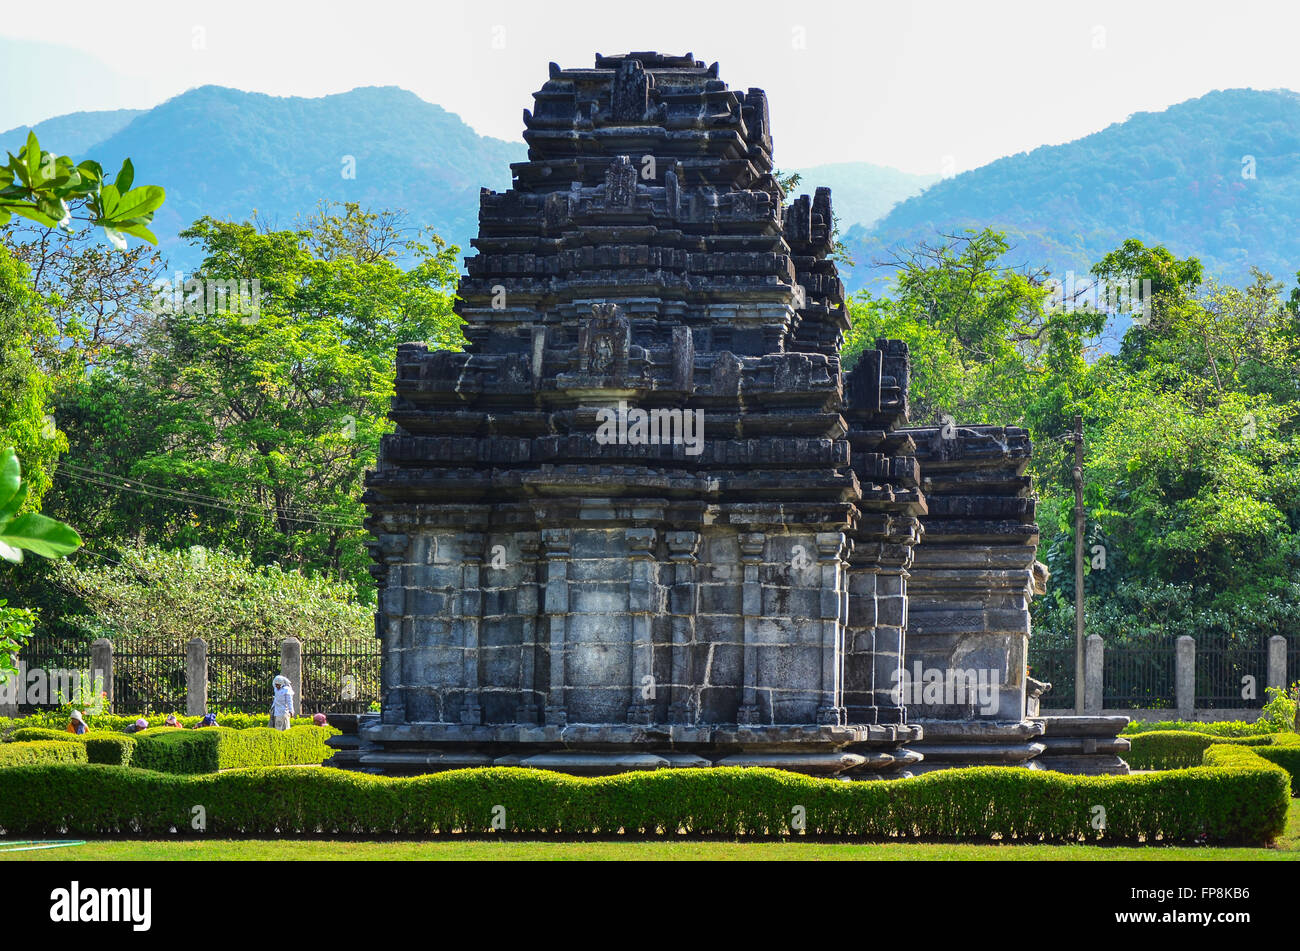 Intricately carved rear of the Mahadev Temple at Tambdi Surla, with beautiful mountains of the Western Ghats in - Stock Image